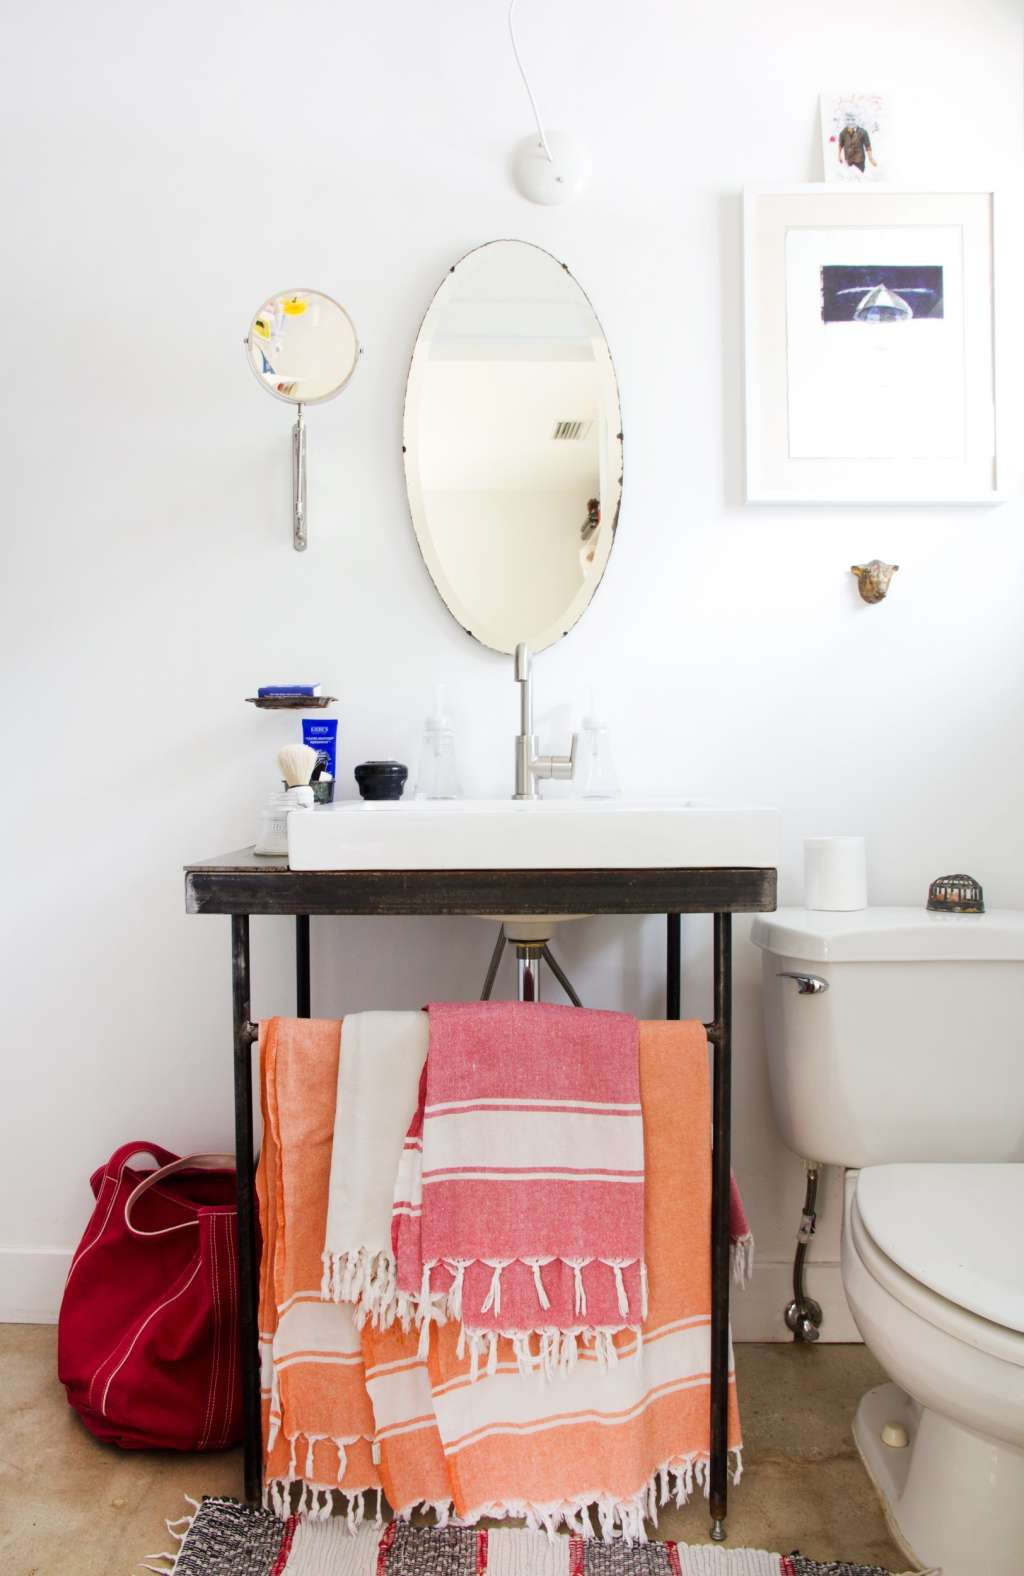 Banish Boring: 10 Unexpected & Unusual Bathroom Details to Steal